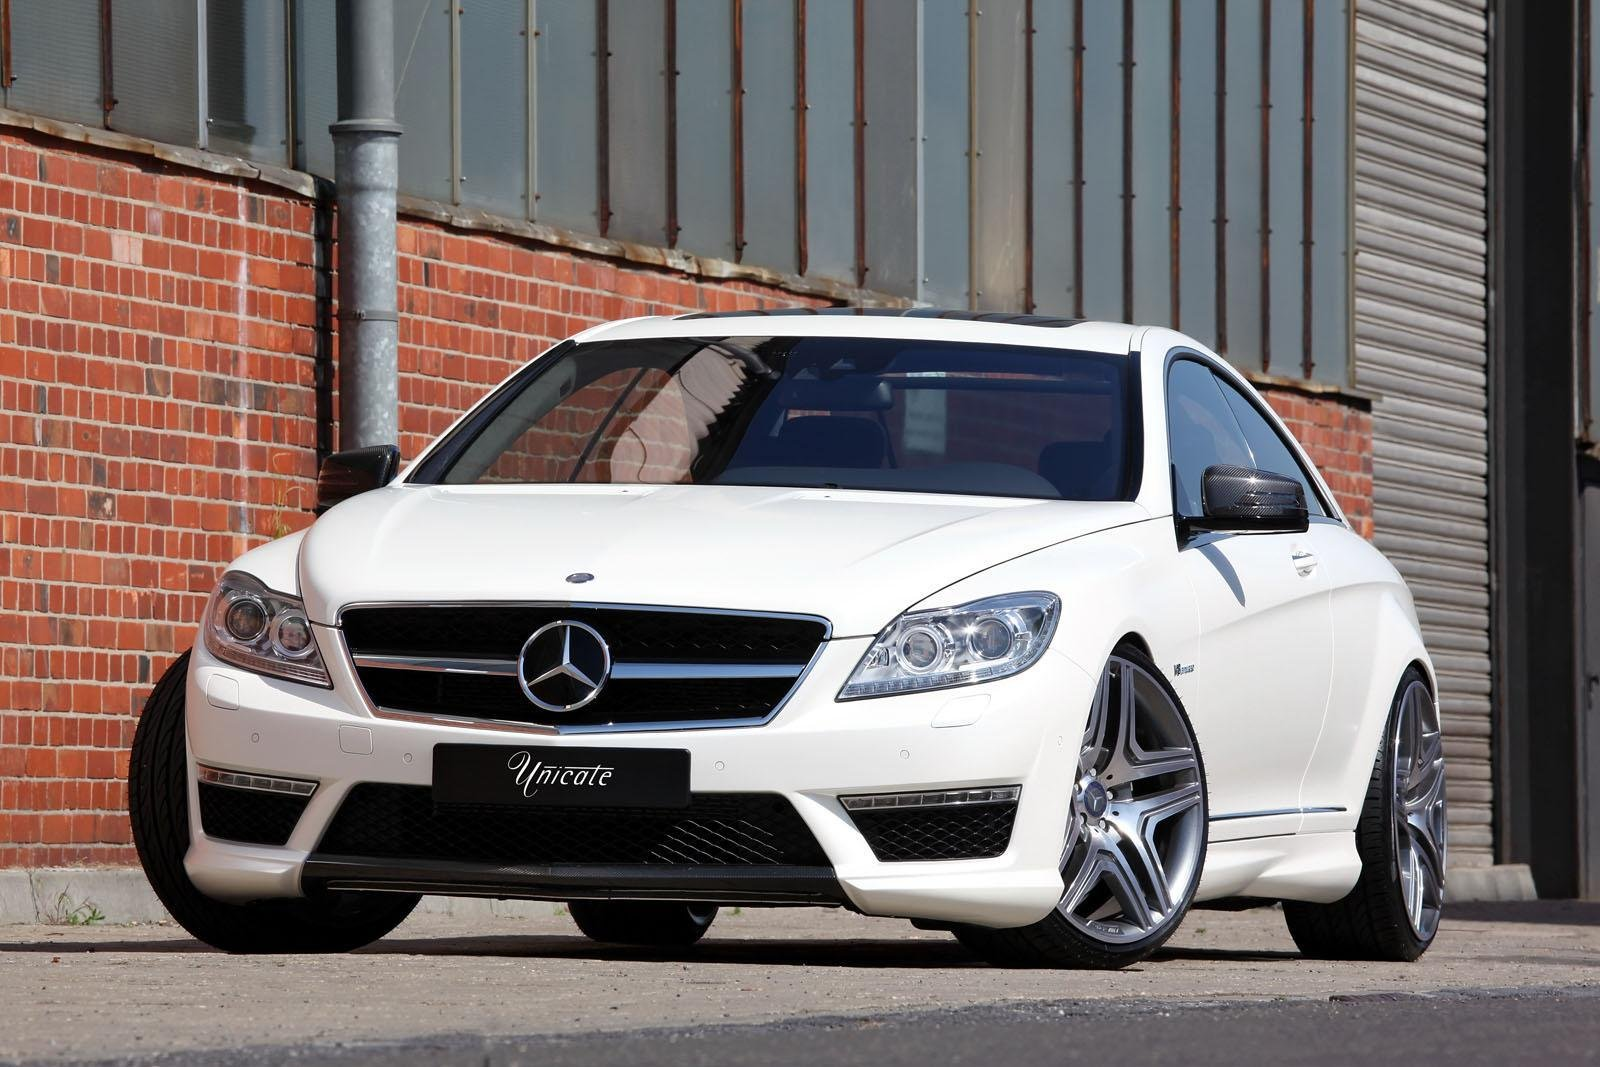 2013 mercedes cl63 amg by unicate germany top speed. Black Bedroom Furniture Sets. Home Design Ideas